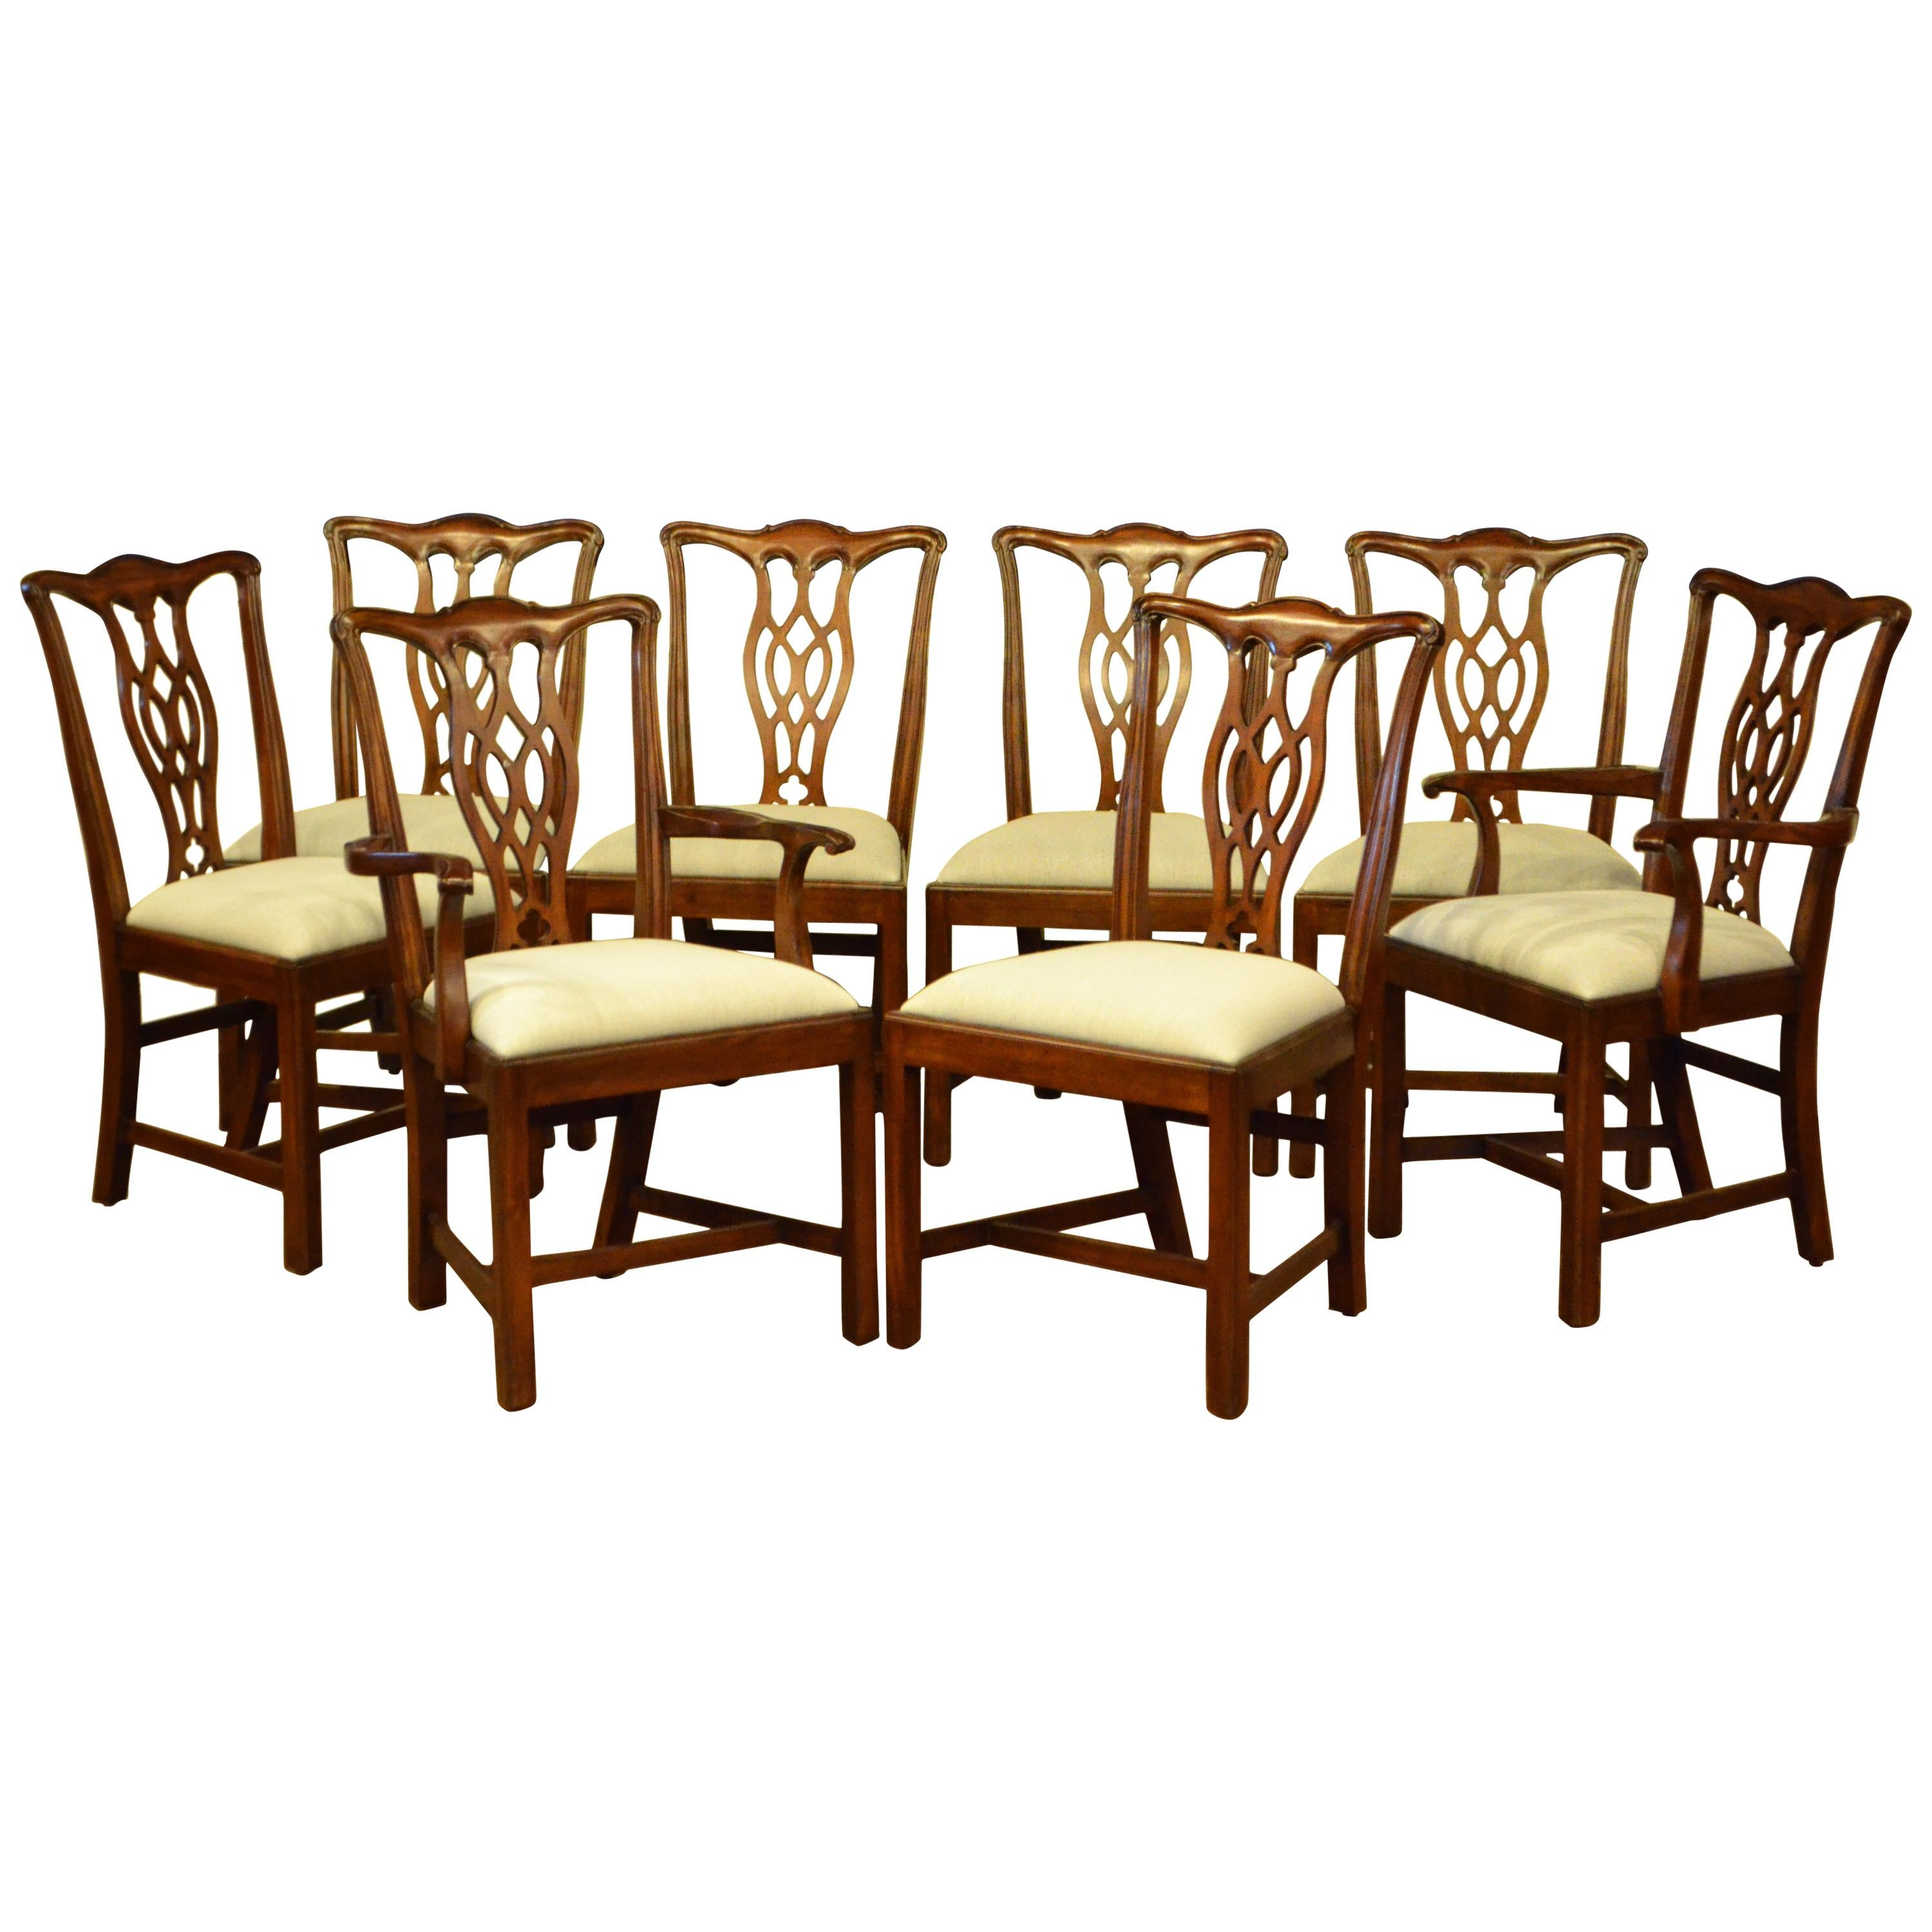 Eight New Mahogany Straight Leg Chippendale Style Dining Chairs by Leighton Hall